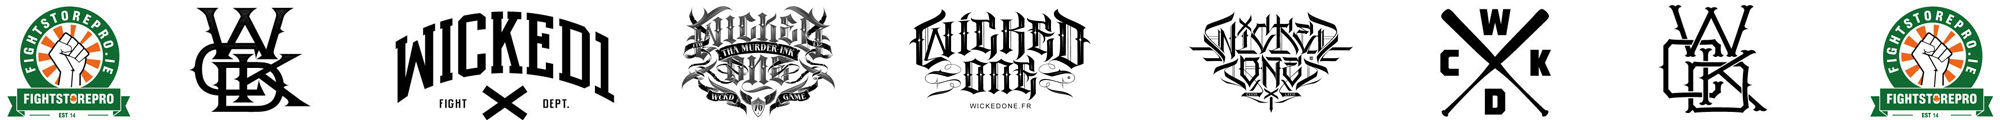 Wicked One - Fightstore PRO Ireland